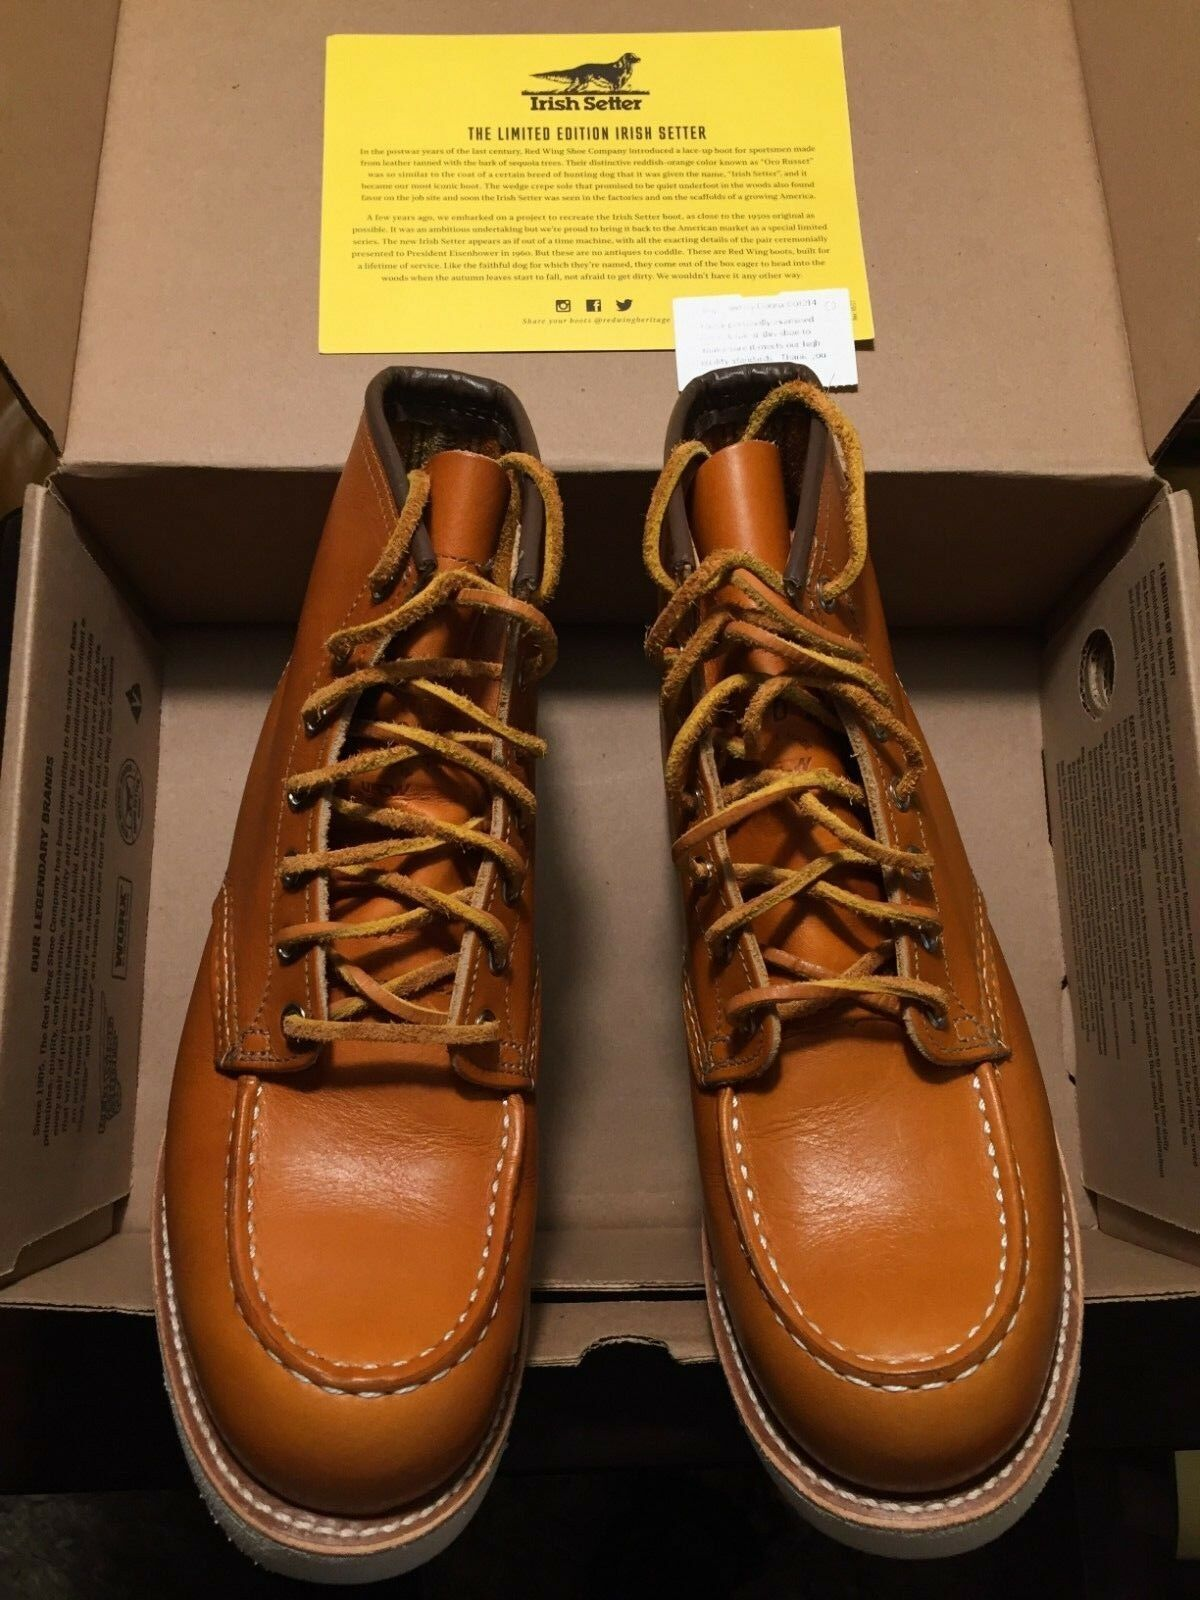 LIMITED RED WING Irish Setter Sport Boots 9875 Size 9 D gold Russett 6  Moc Toe